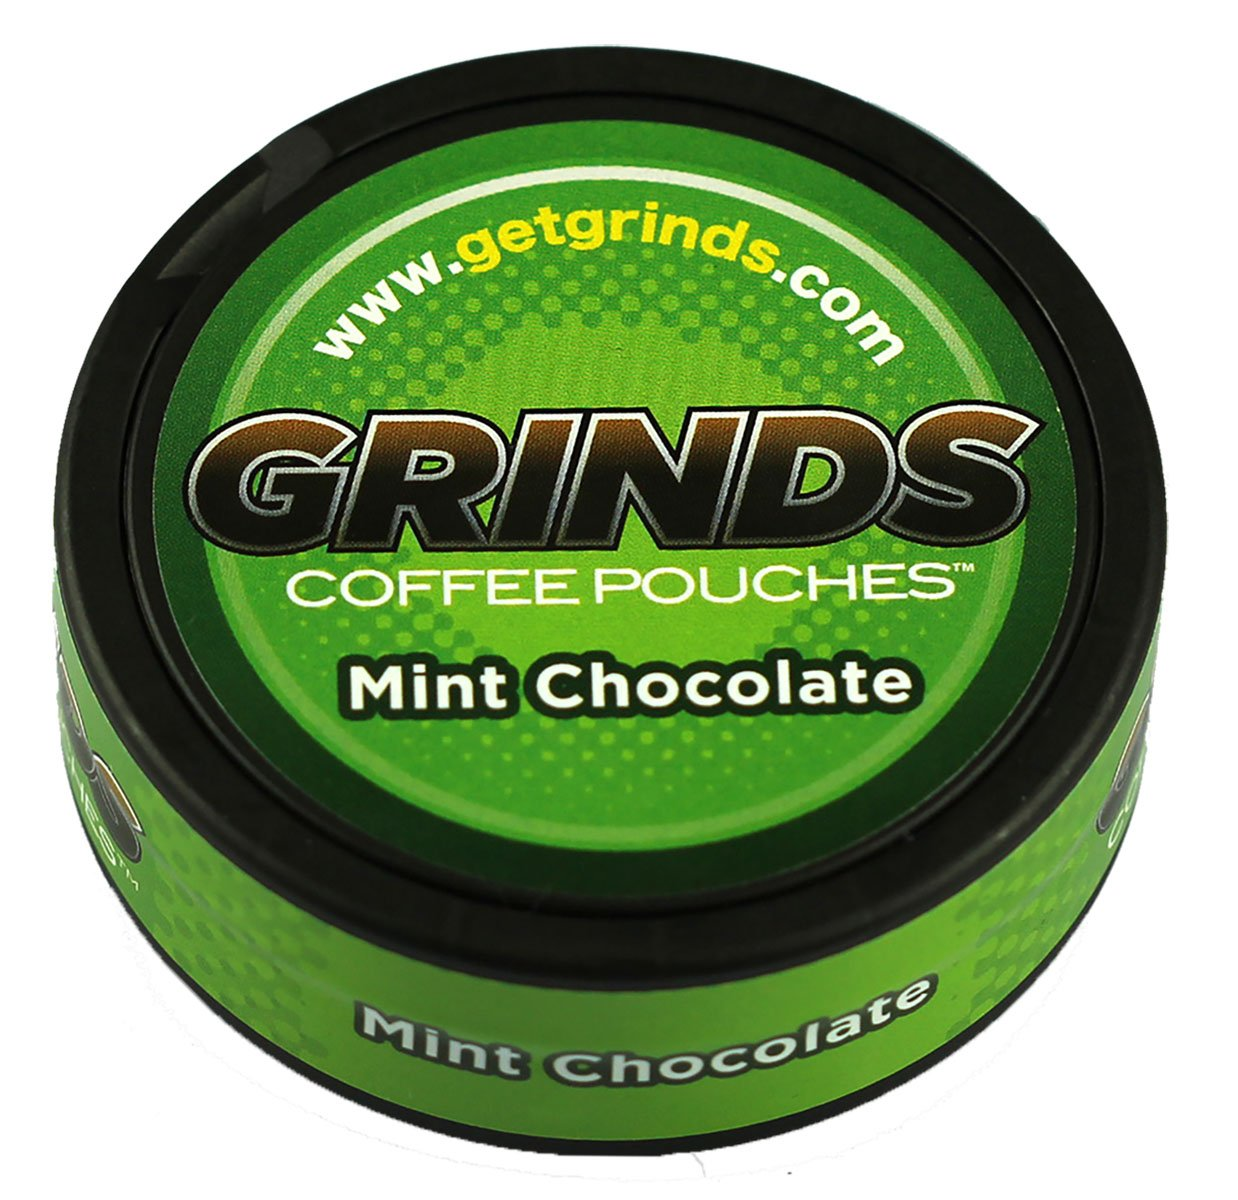 Mint Chocolate Grinds Coffee Pouches